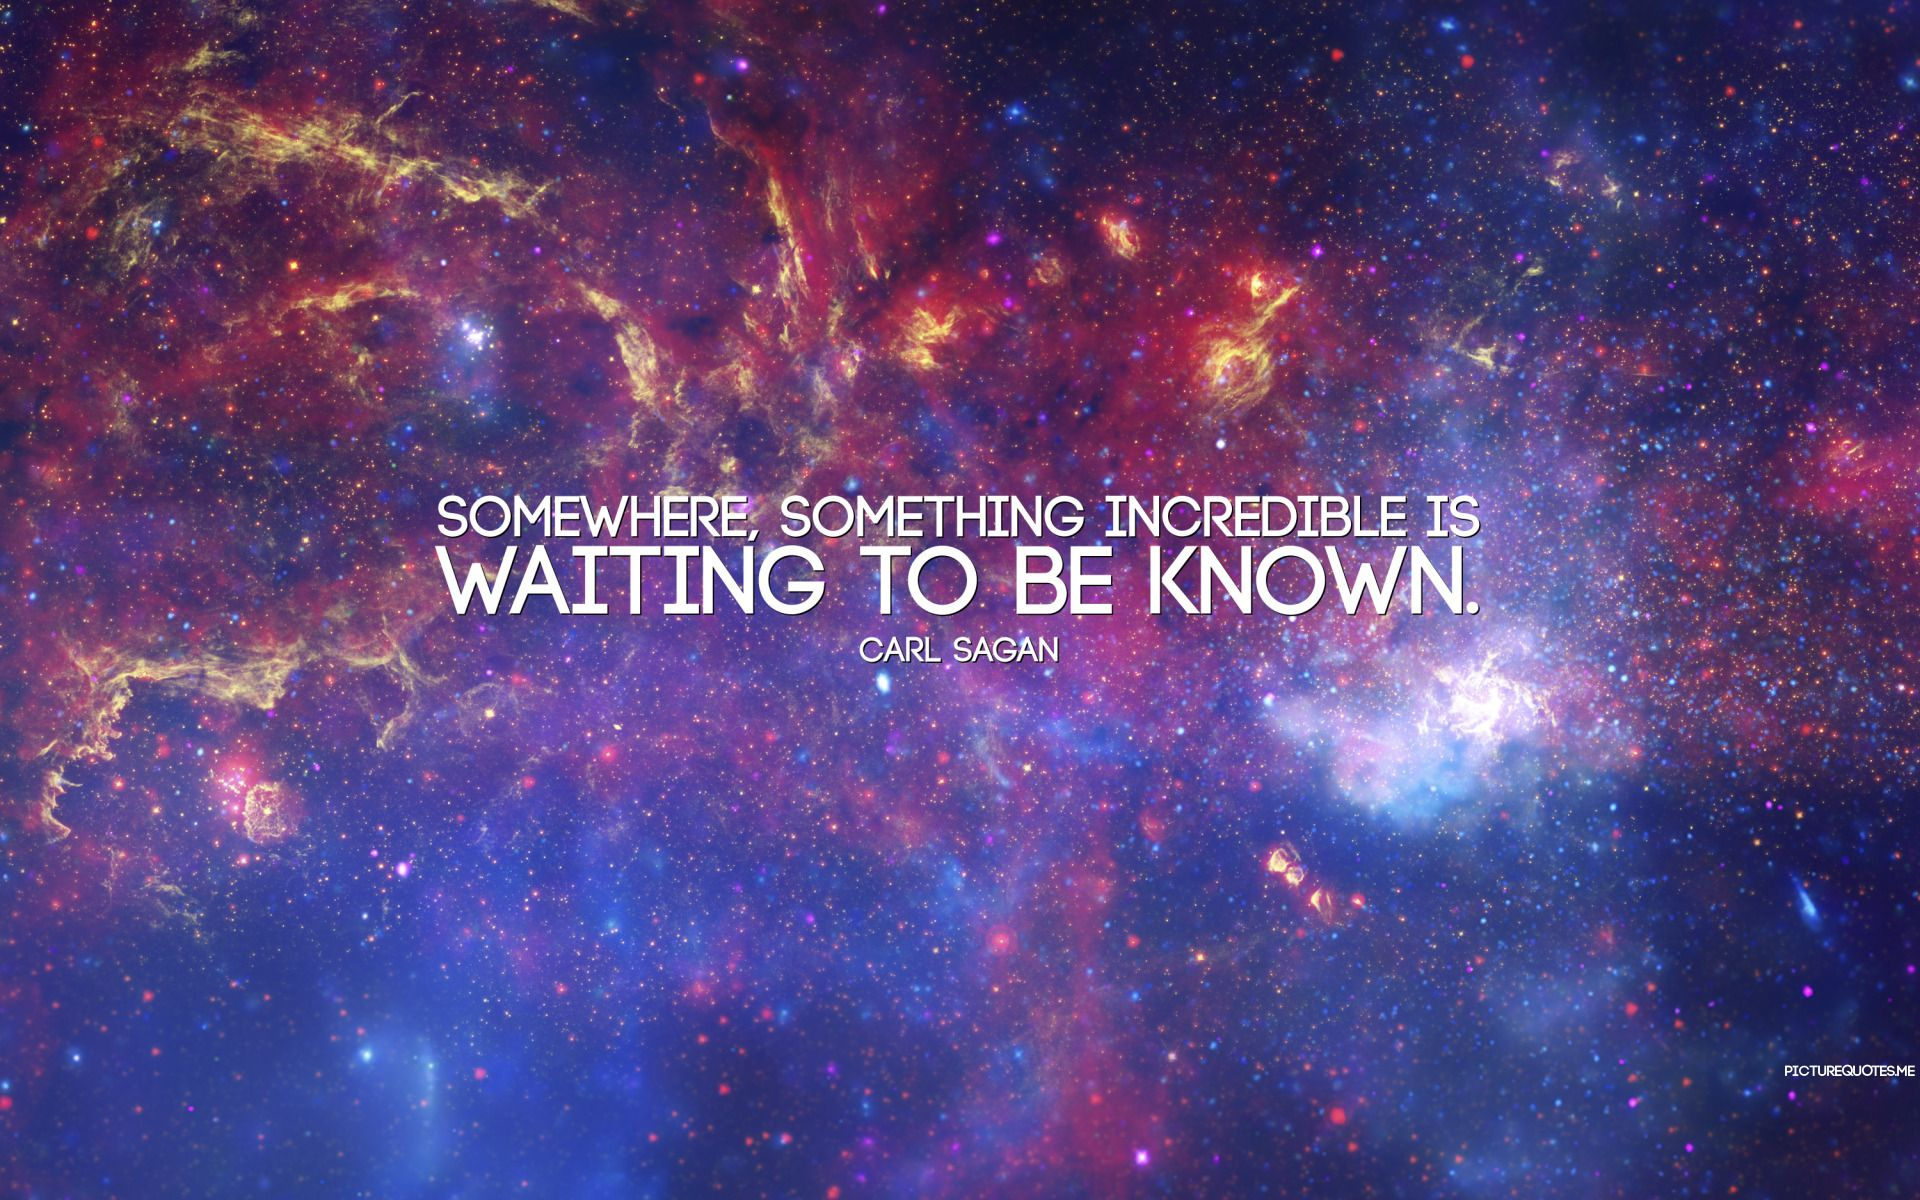 Somewhere Something Incredible Is Waiting To Be Known Image And Wallpaper The Incredibles Carl Sagan Astrophysics